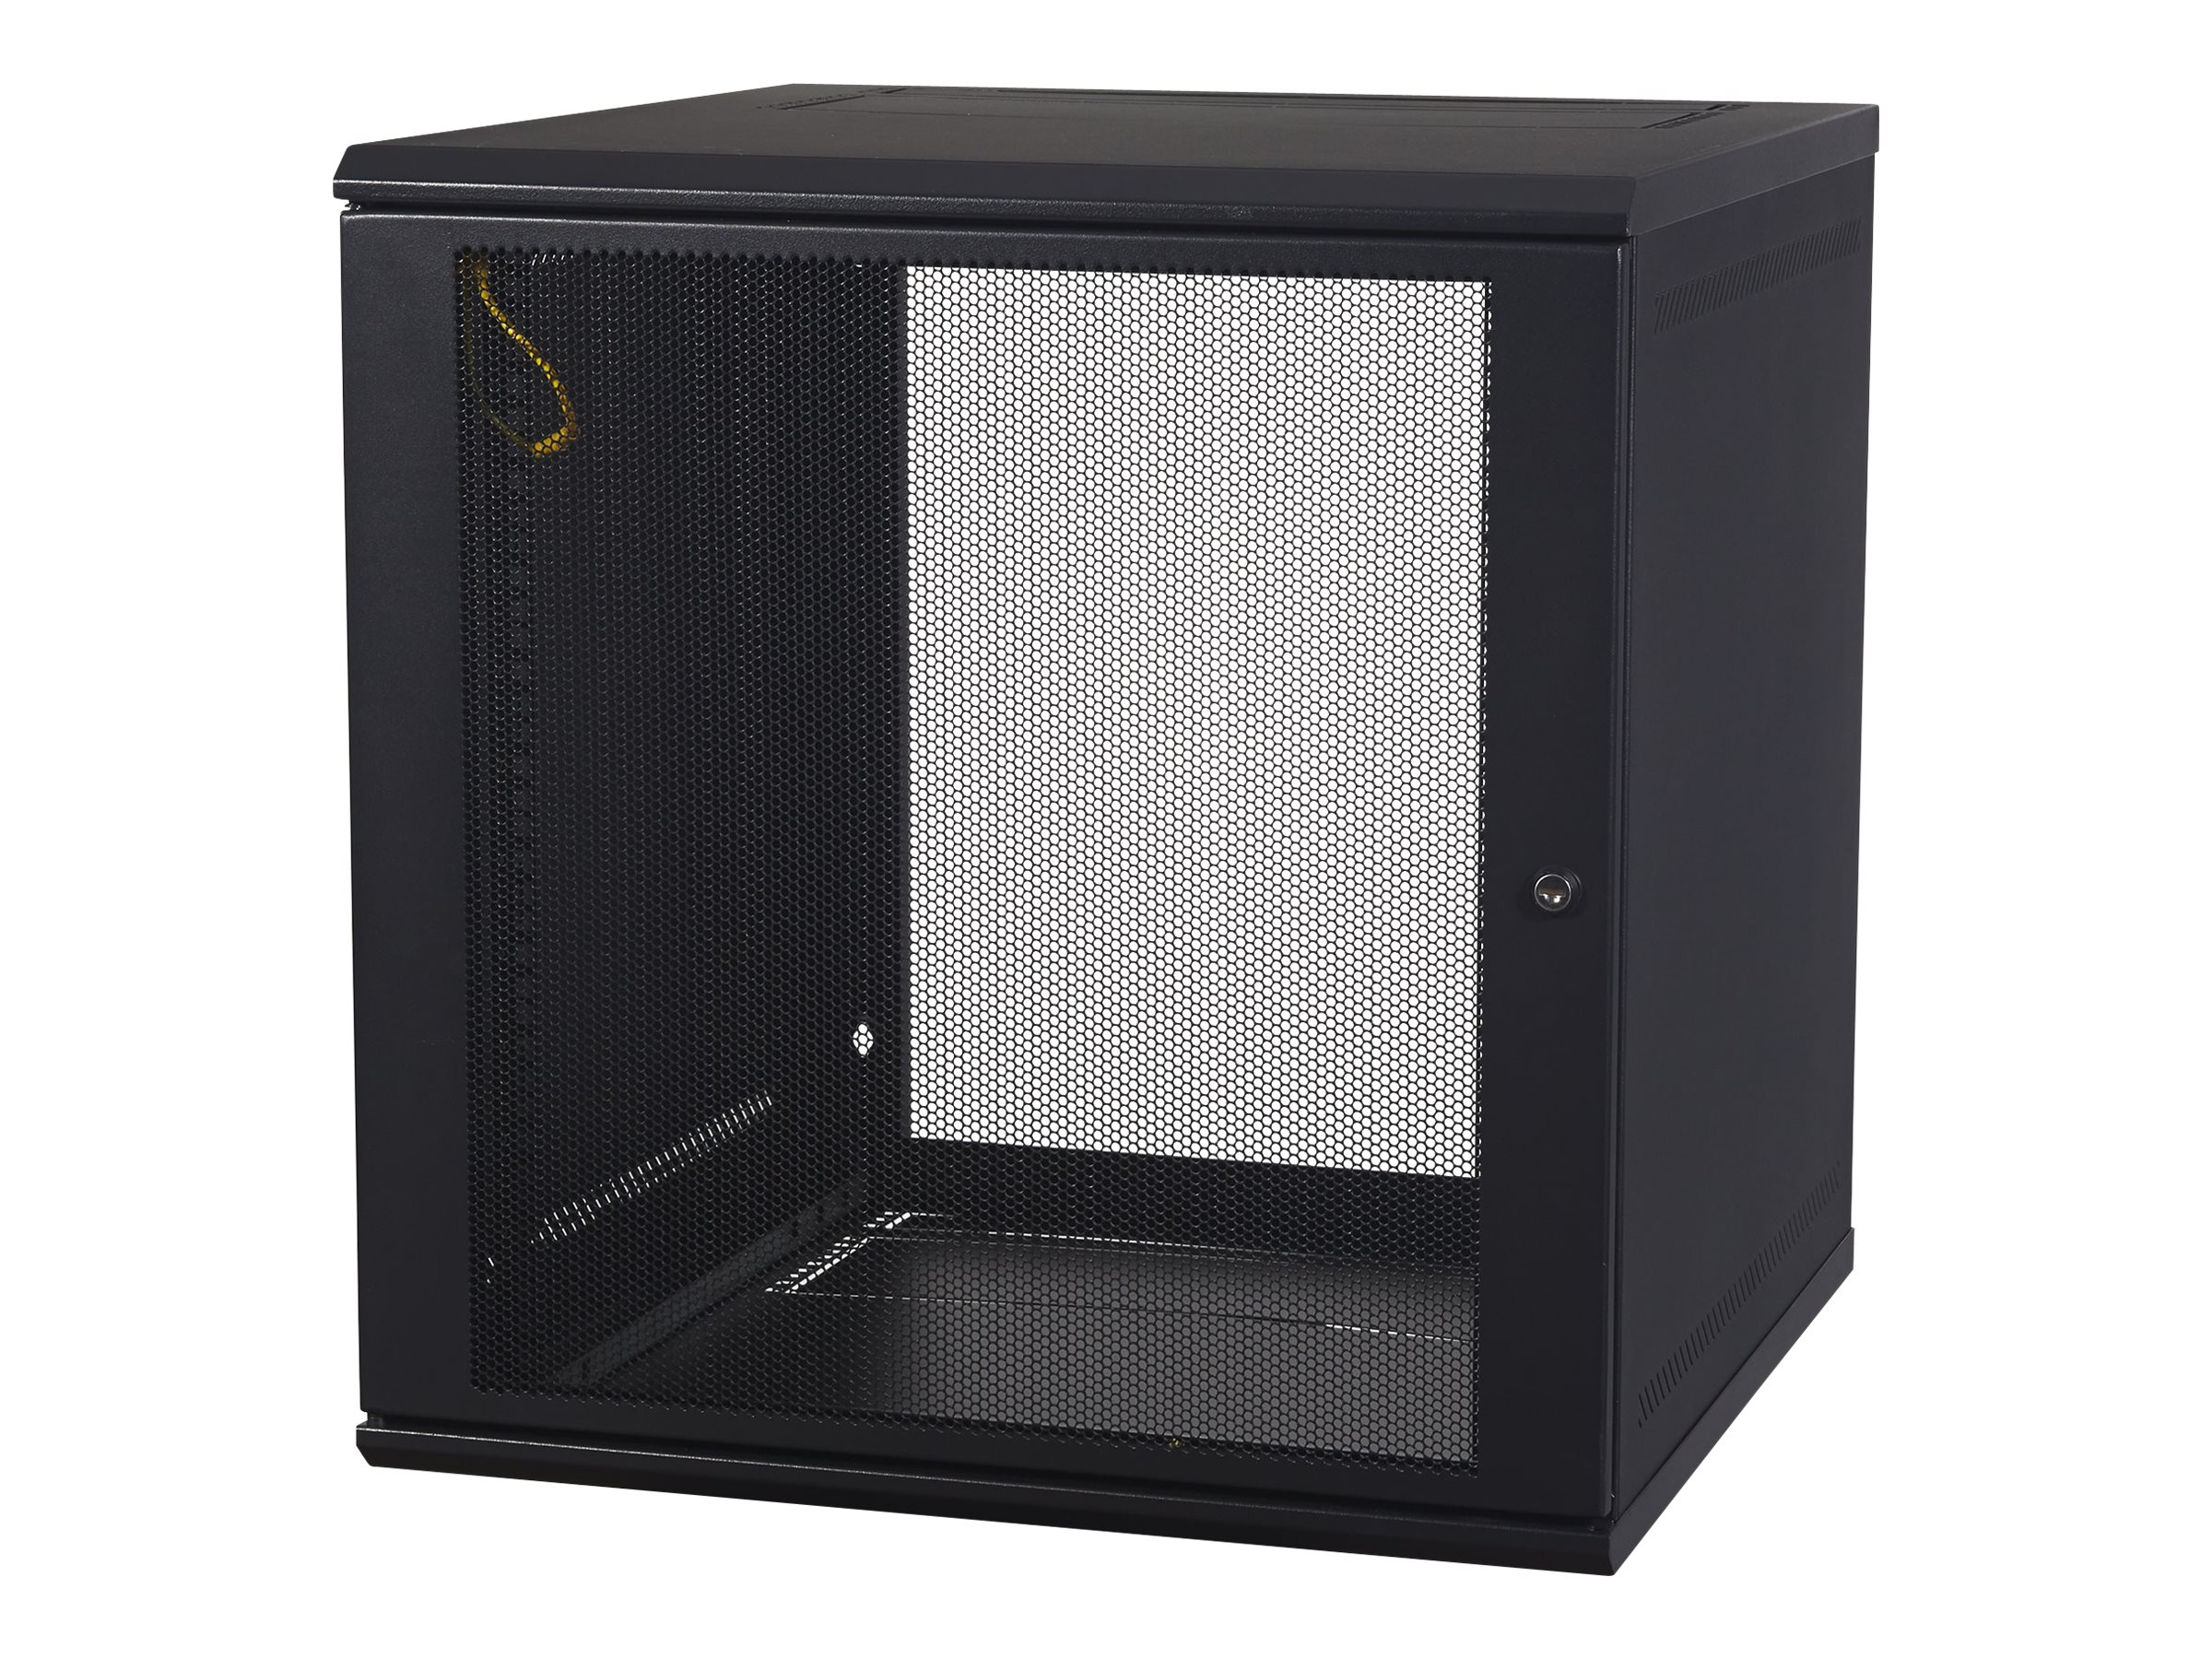 APC Netshelter WX 12U Wall Mount Cabinet, Instant Rebate - Save $35